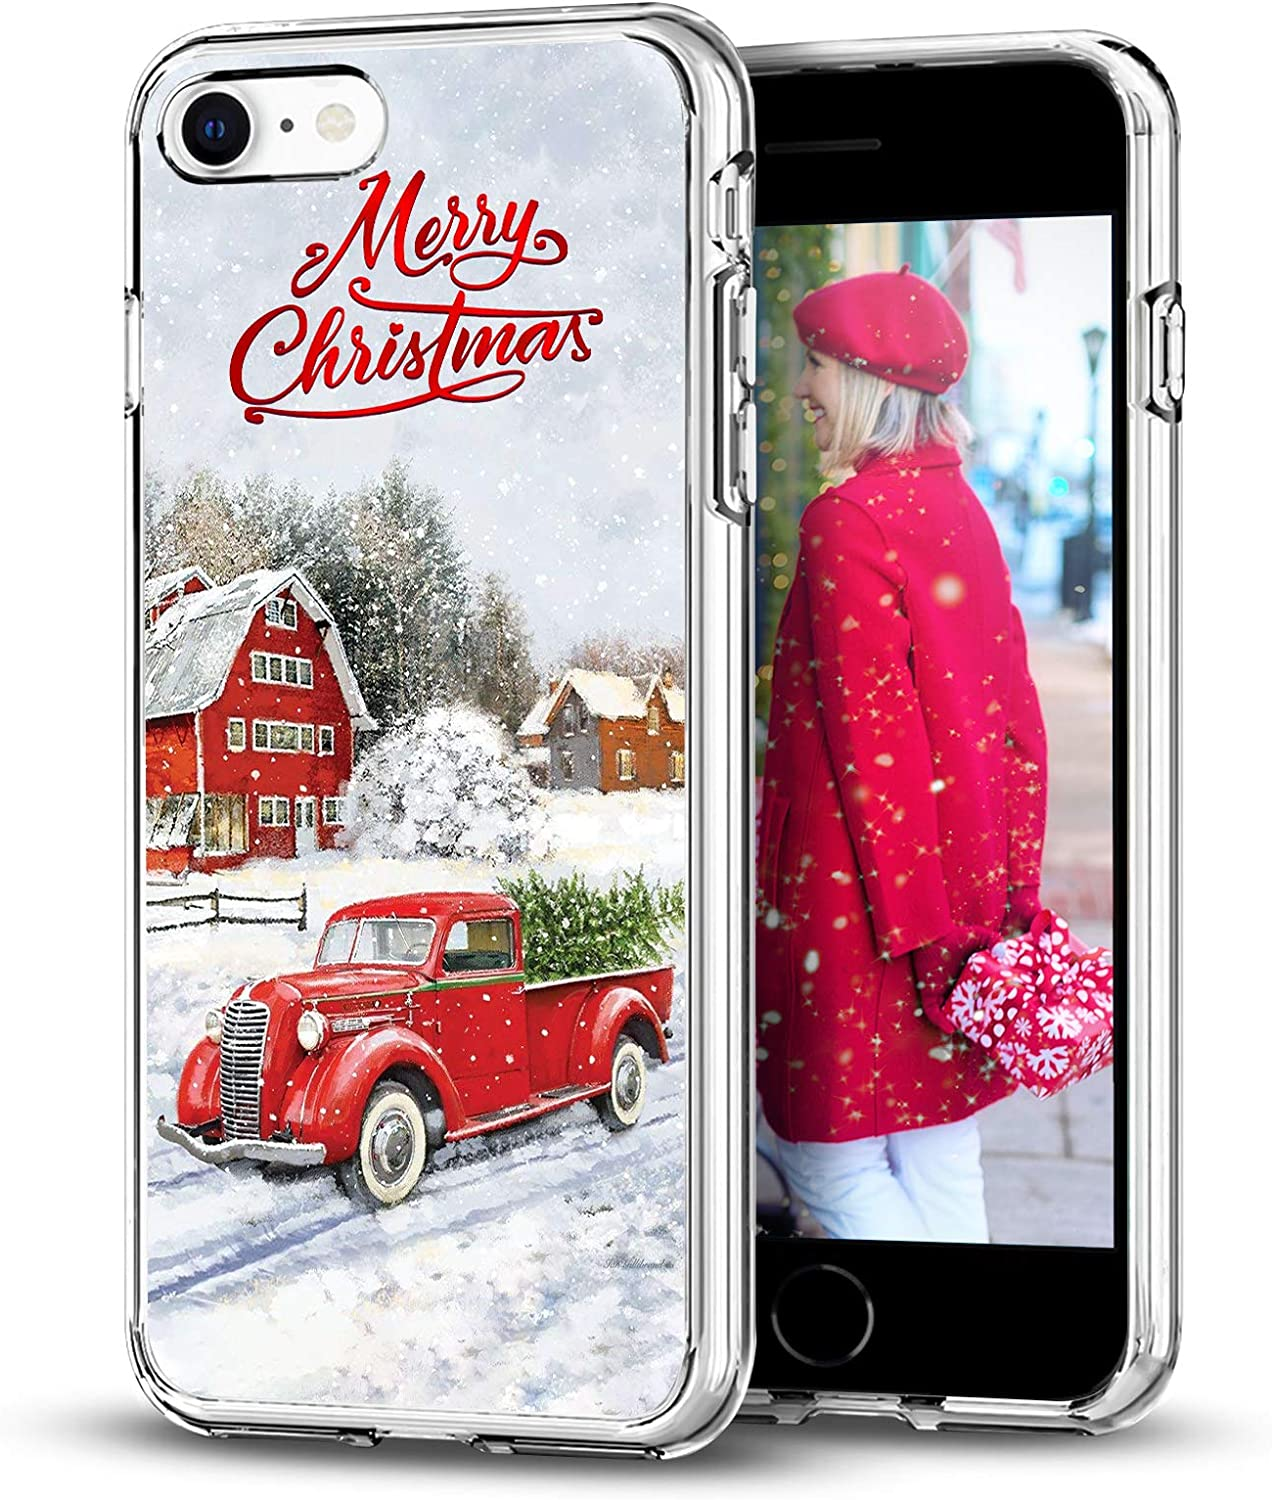 Newseego Compatible with iPhone SE 2020/iPhone 7/8 Christmas Case, Shockproof Series Anti-Yellow TPU Bumper Protective Soft Case Cover for iPhone 7/8/SE Merry Christmas Car Design